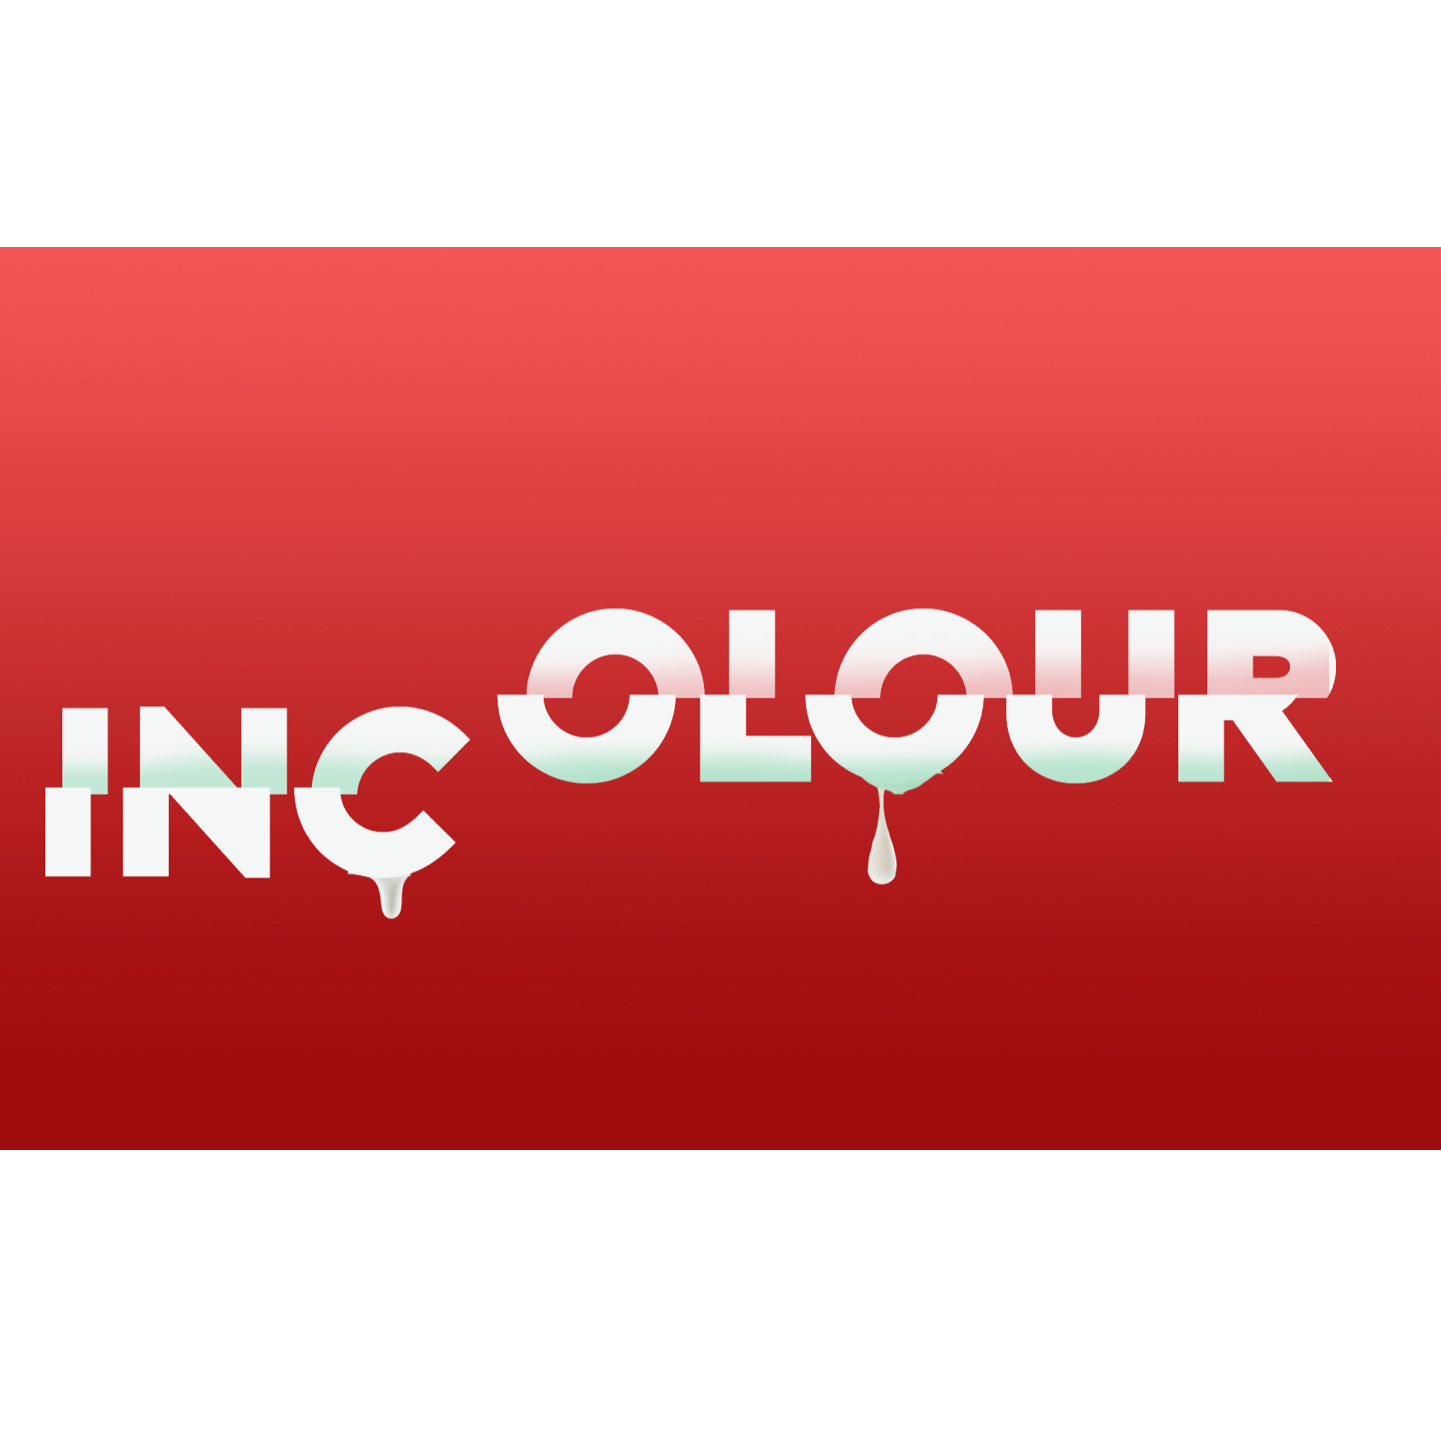 Benjamin Moore Farrow & Ball INCOLOUR